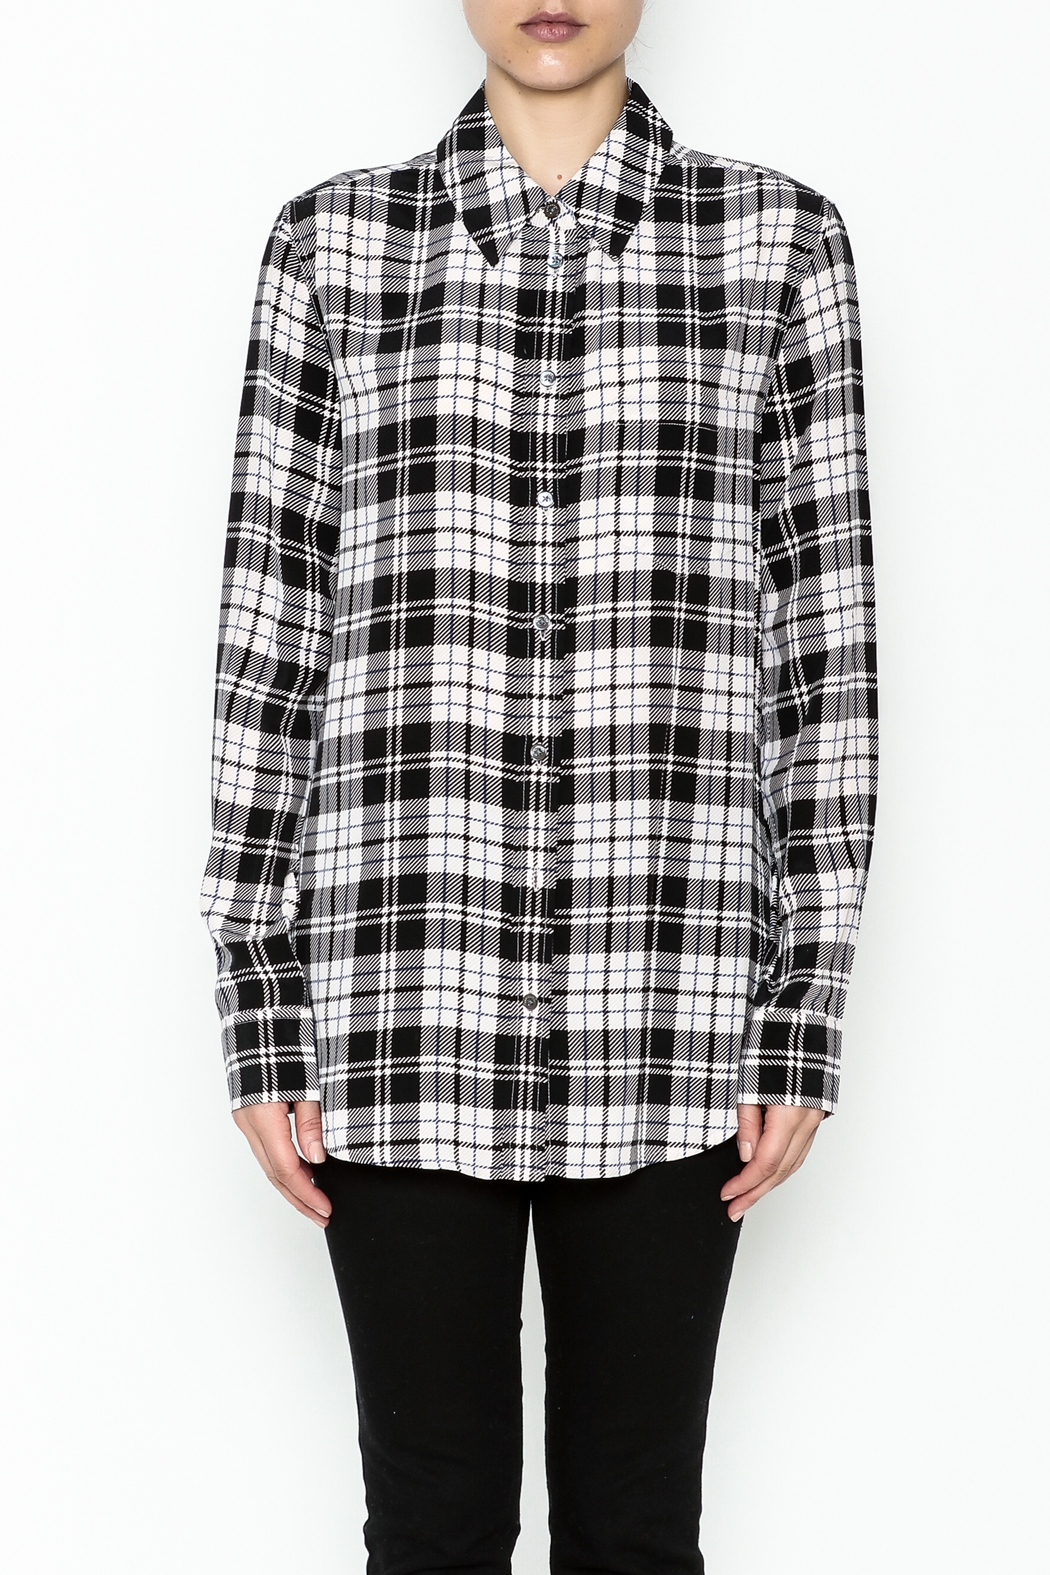 Equipment French Nude Plaid Top - Front Full Image